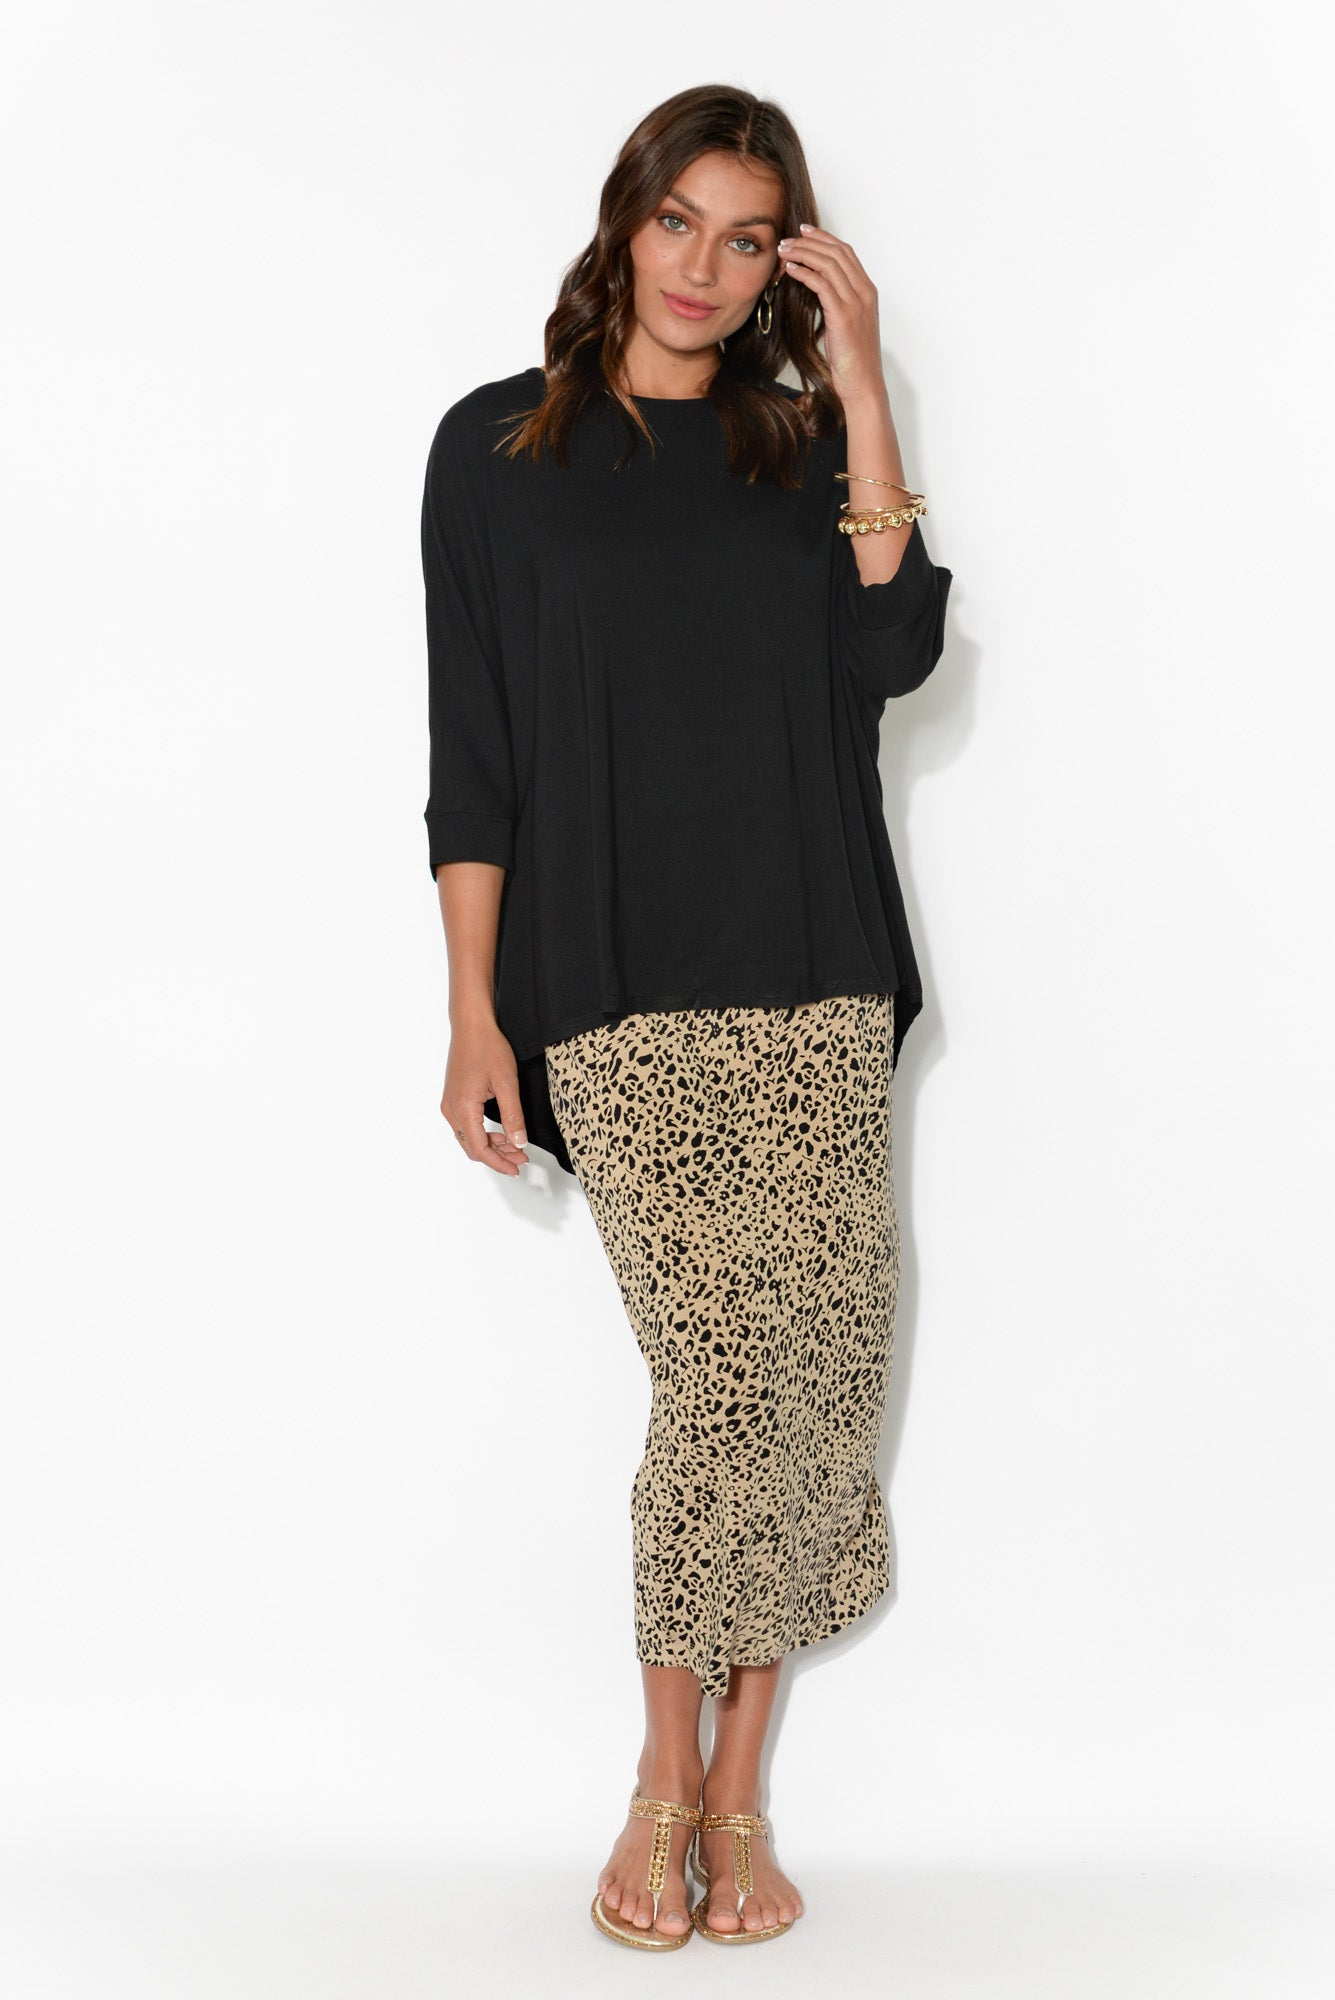 Bindi Black Bamboo Sleeved Top